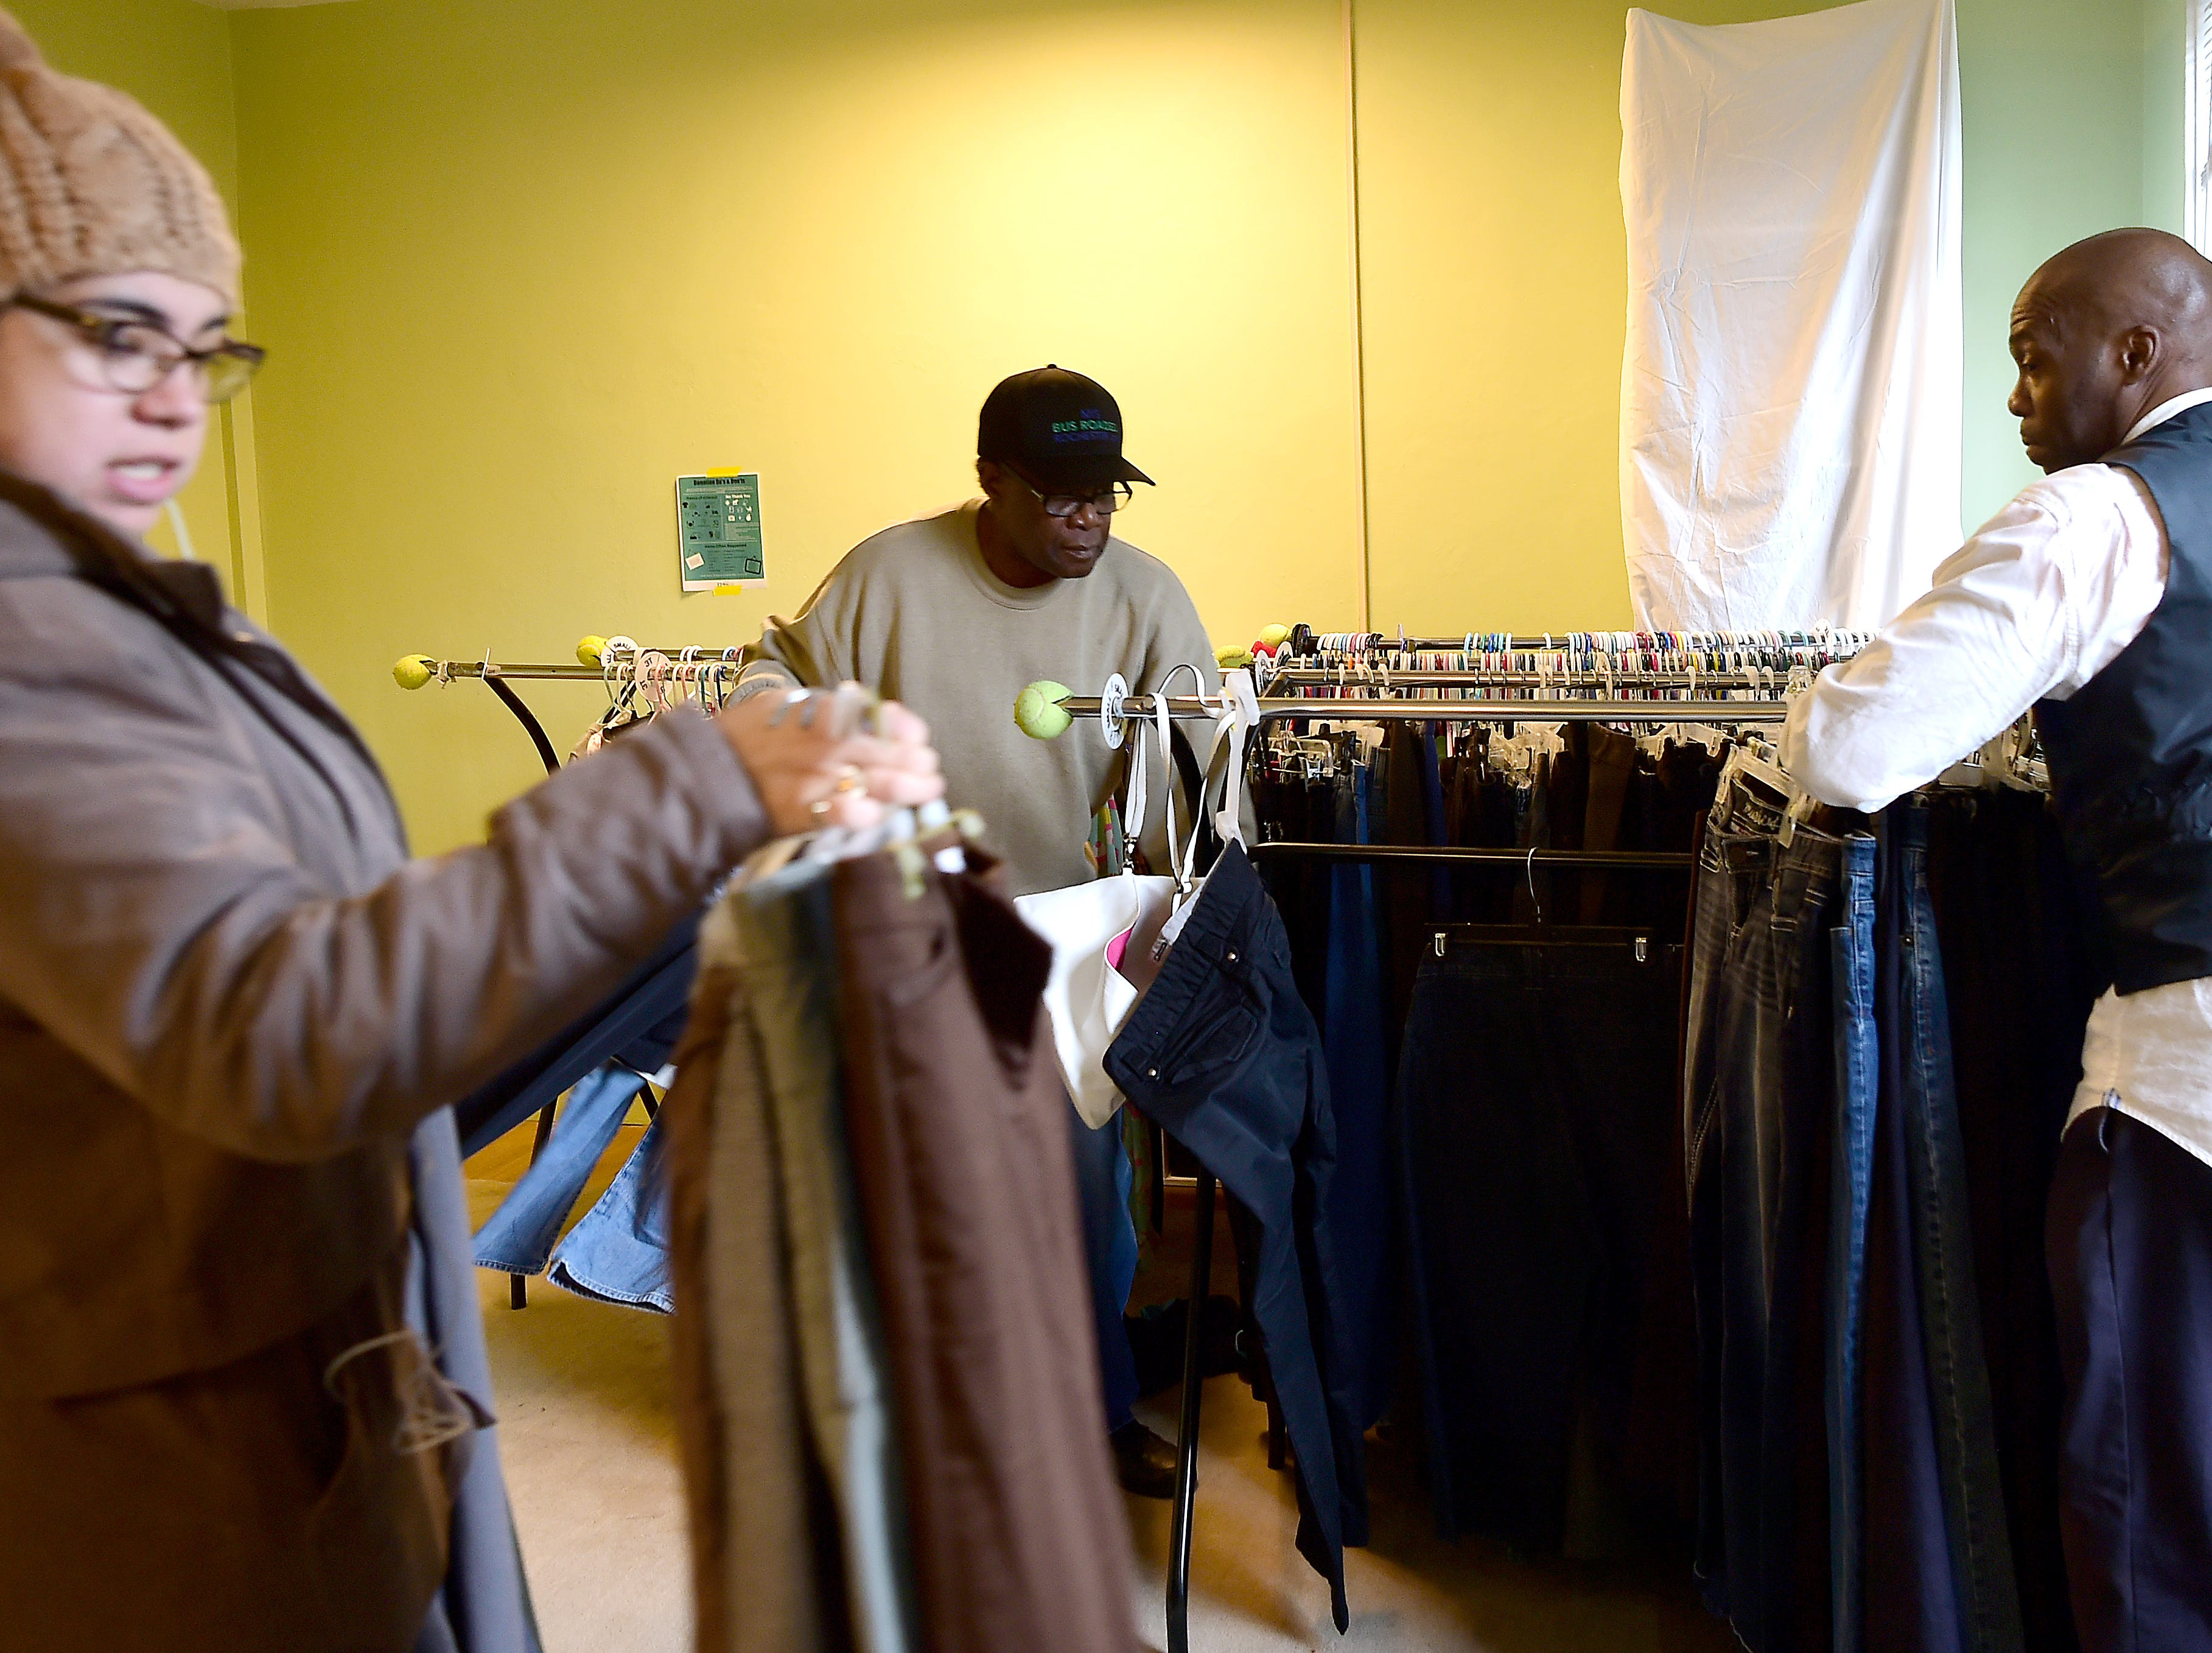 Jessica Estrada, Emmanuel McBean and Alex Williams move racks of clothes as Catholic Charities of Tompkins/Tioga staff and volunteers work at readying winter clothing donations in Ithaca on Thursday, November 29, 2018.